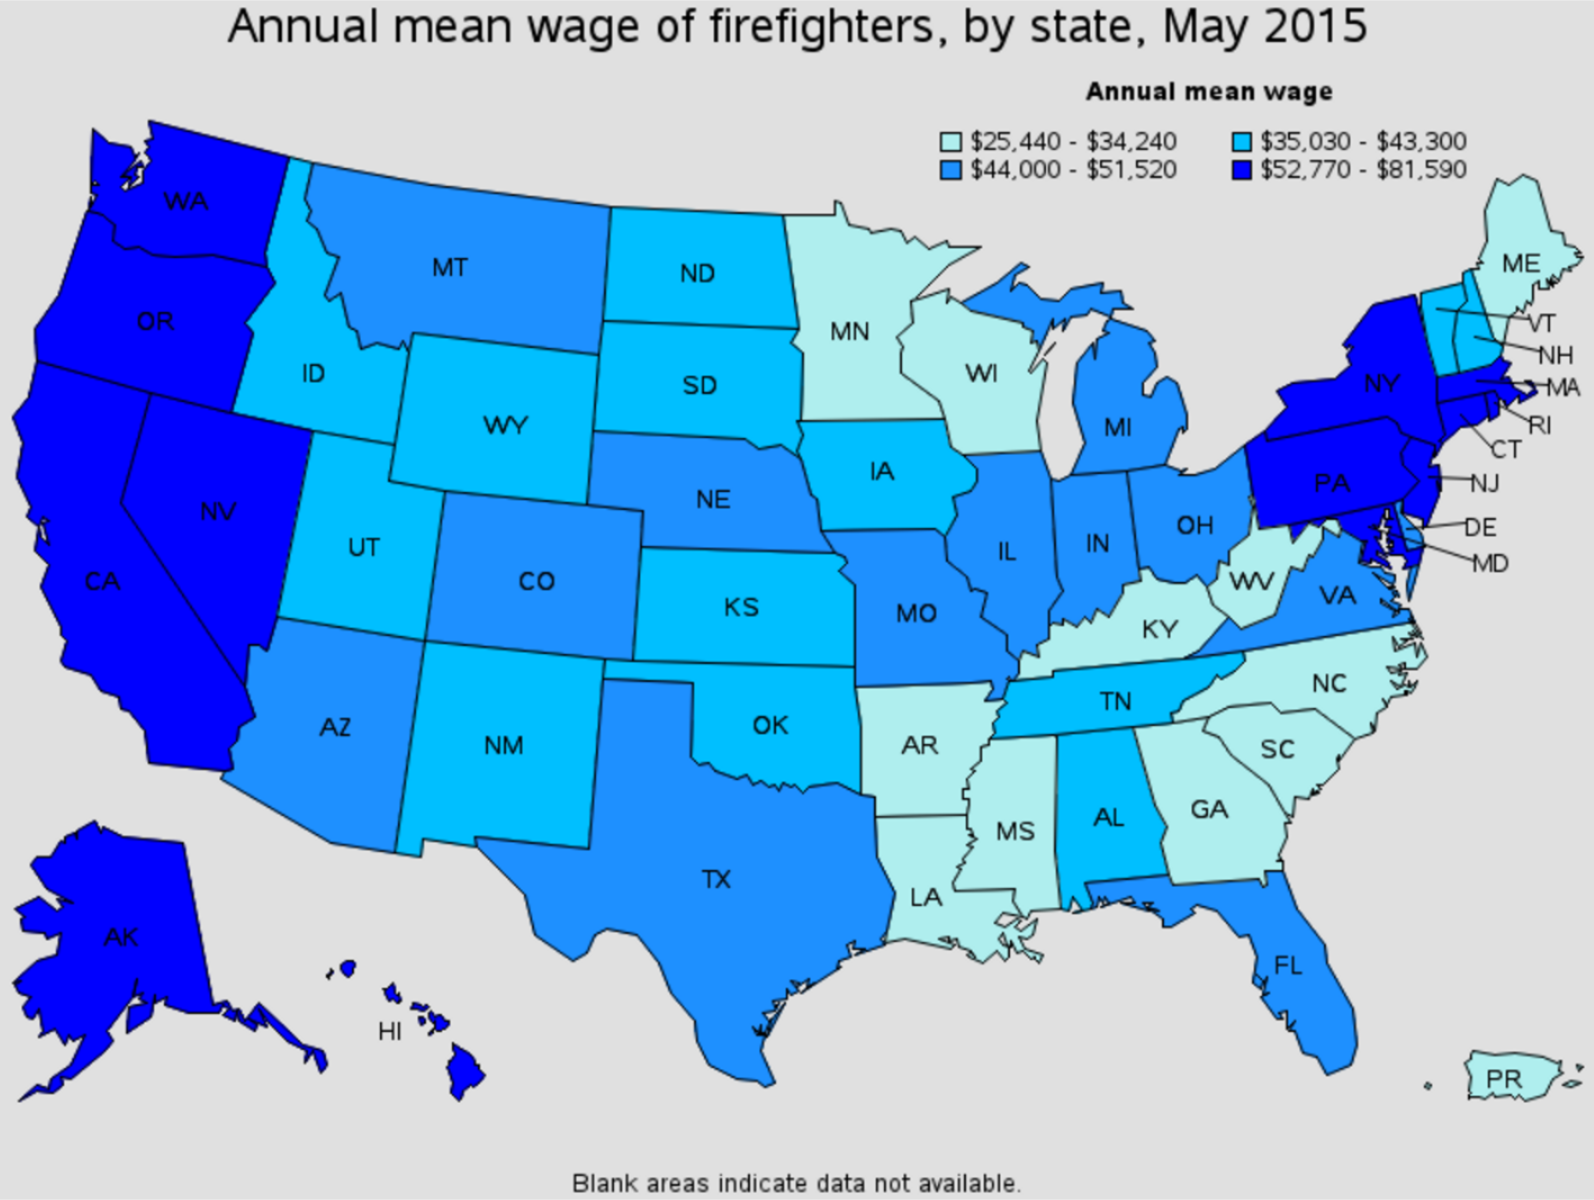 firefighter average salary by state Willow Springs Missouri